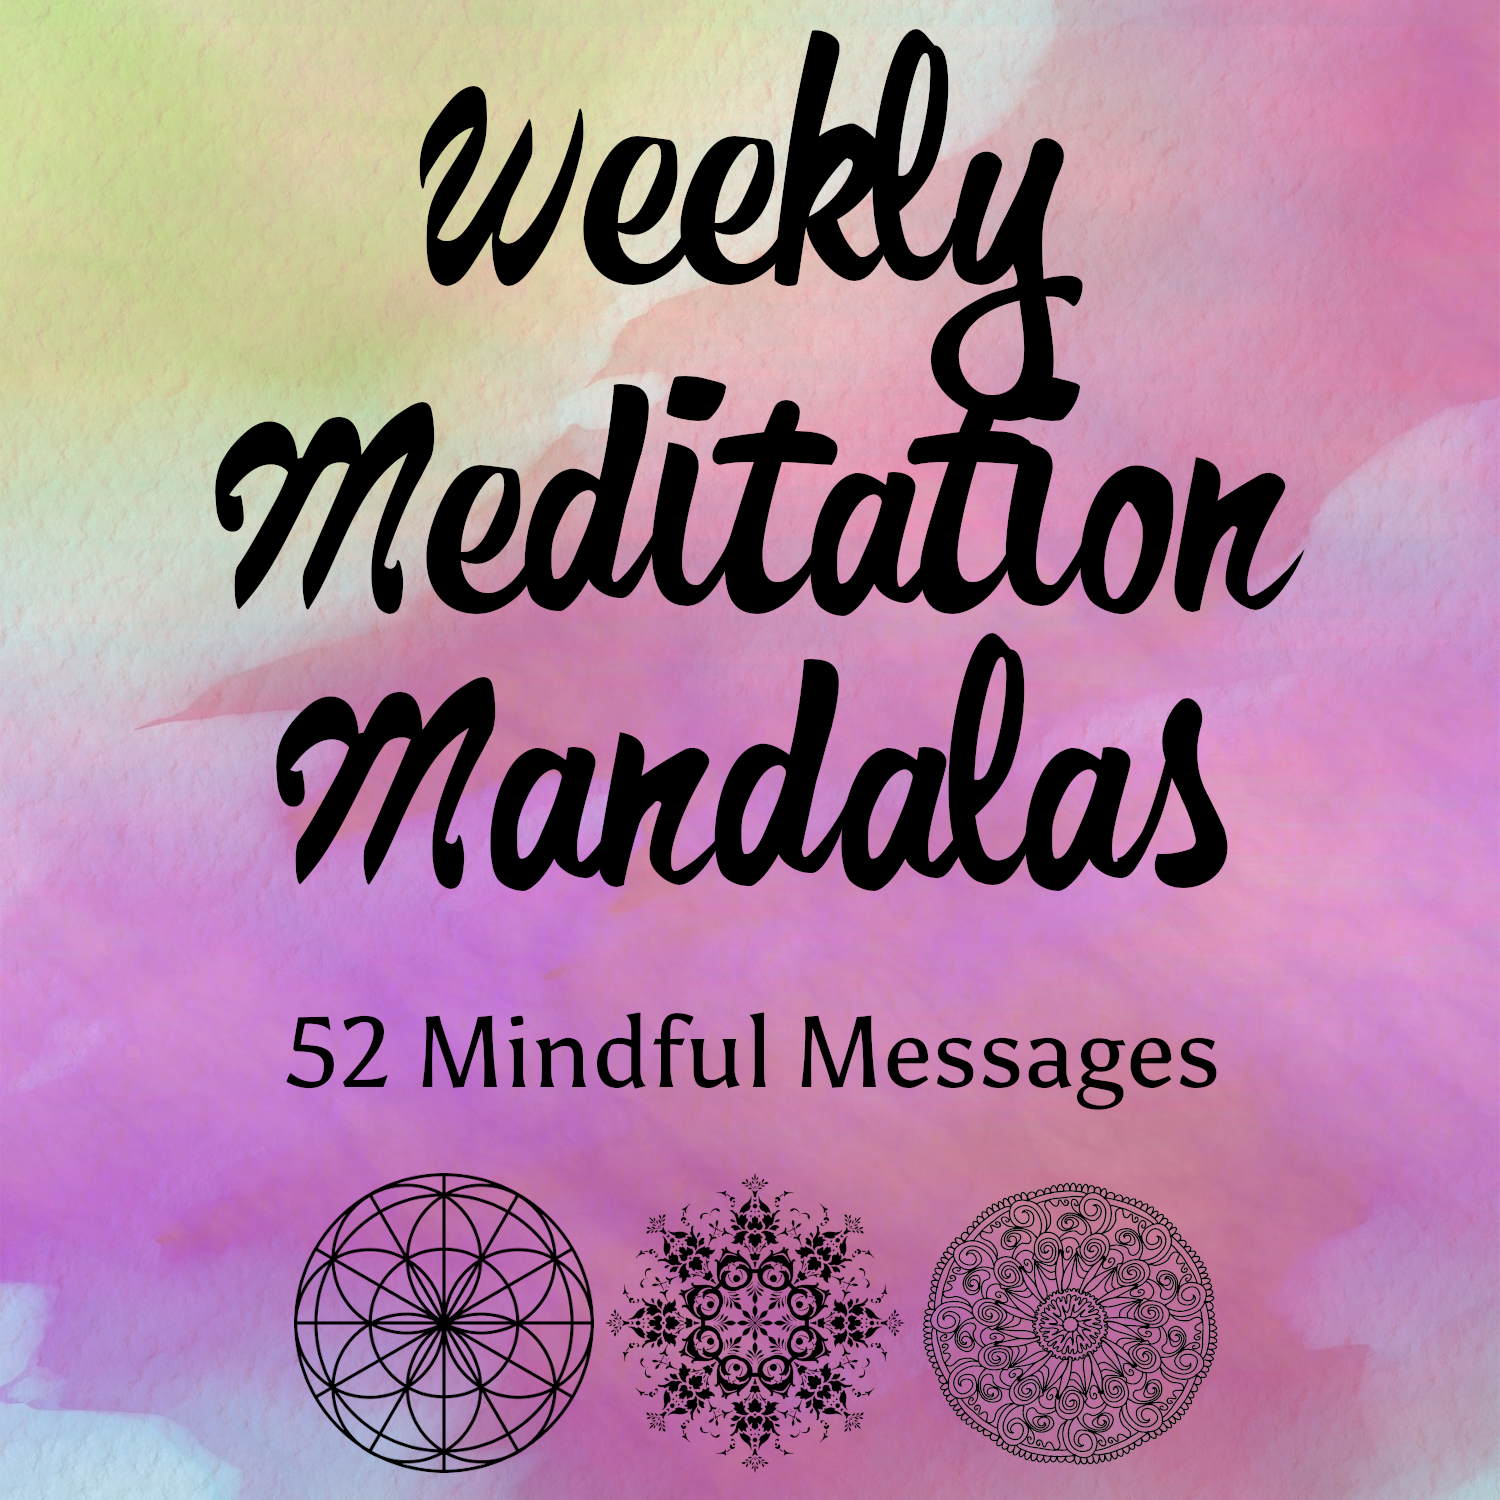 Meditation, Mandalas, Mindful, Messages, Oracle, eBook, Paperback, Amazon, Kindle, KDP, All Natural Spirit, Inspirational, Motivational, Quotes, Zen, Mindfulness,